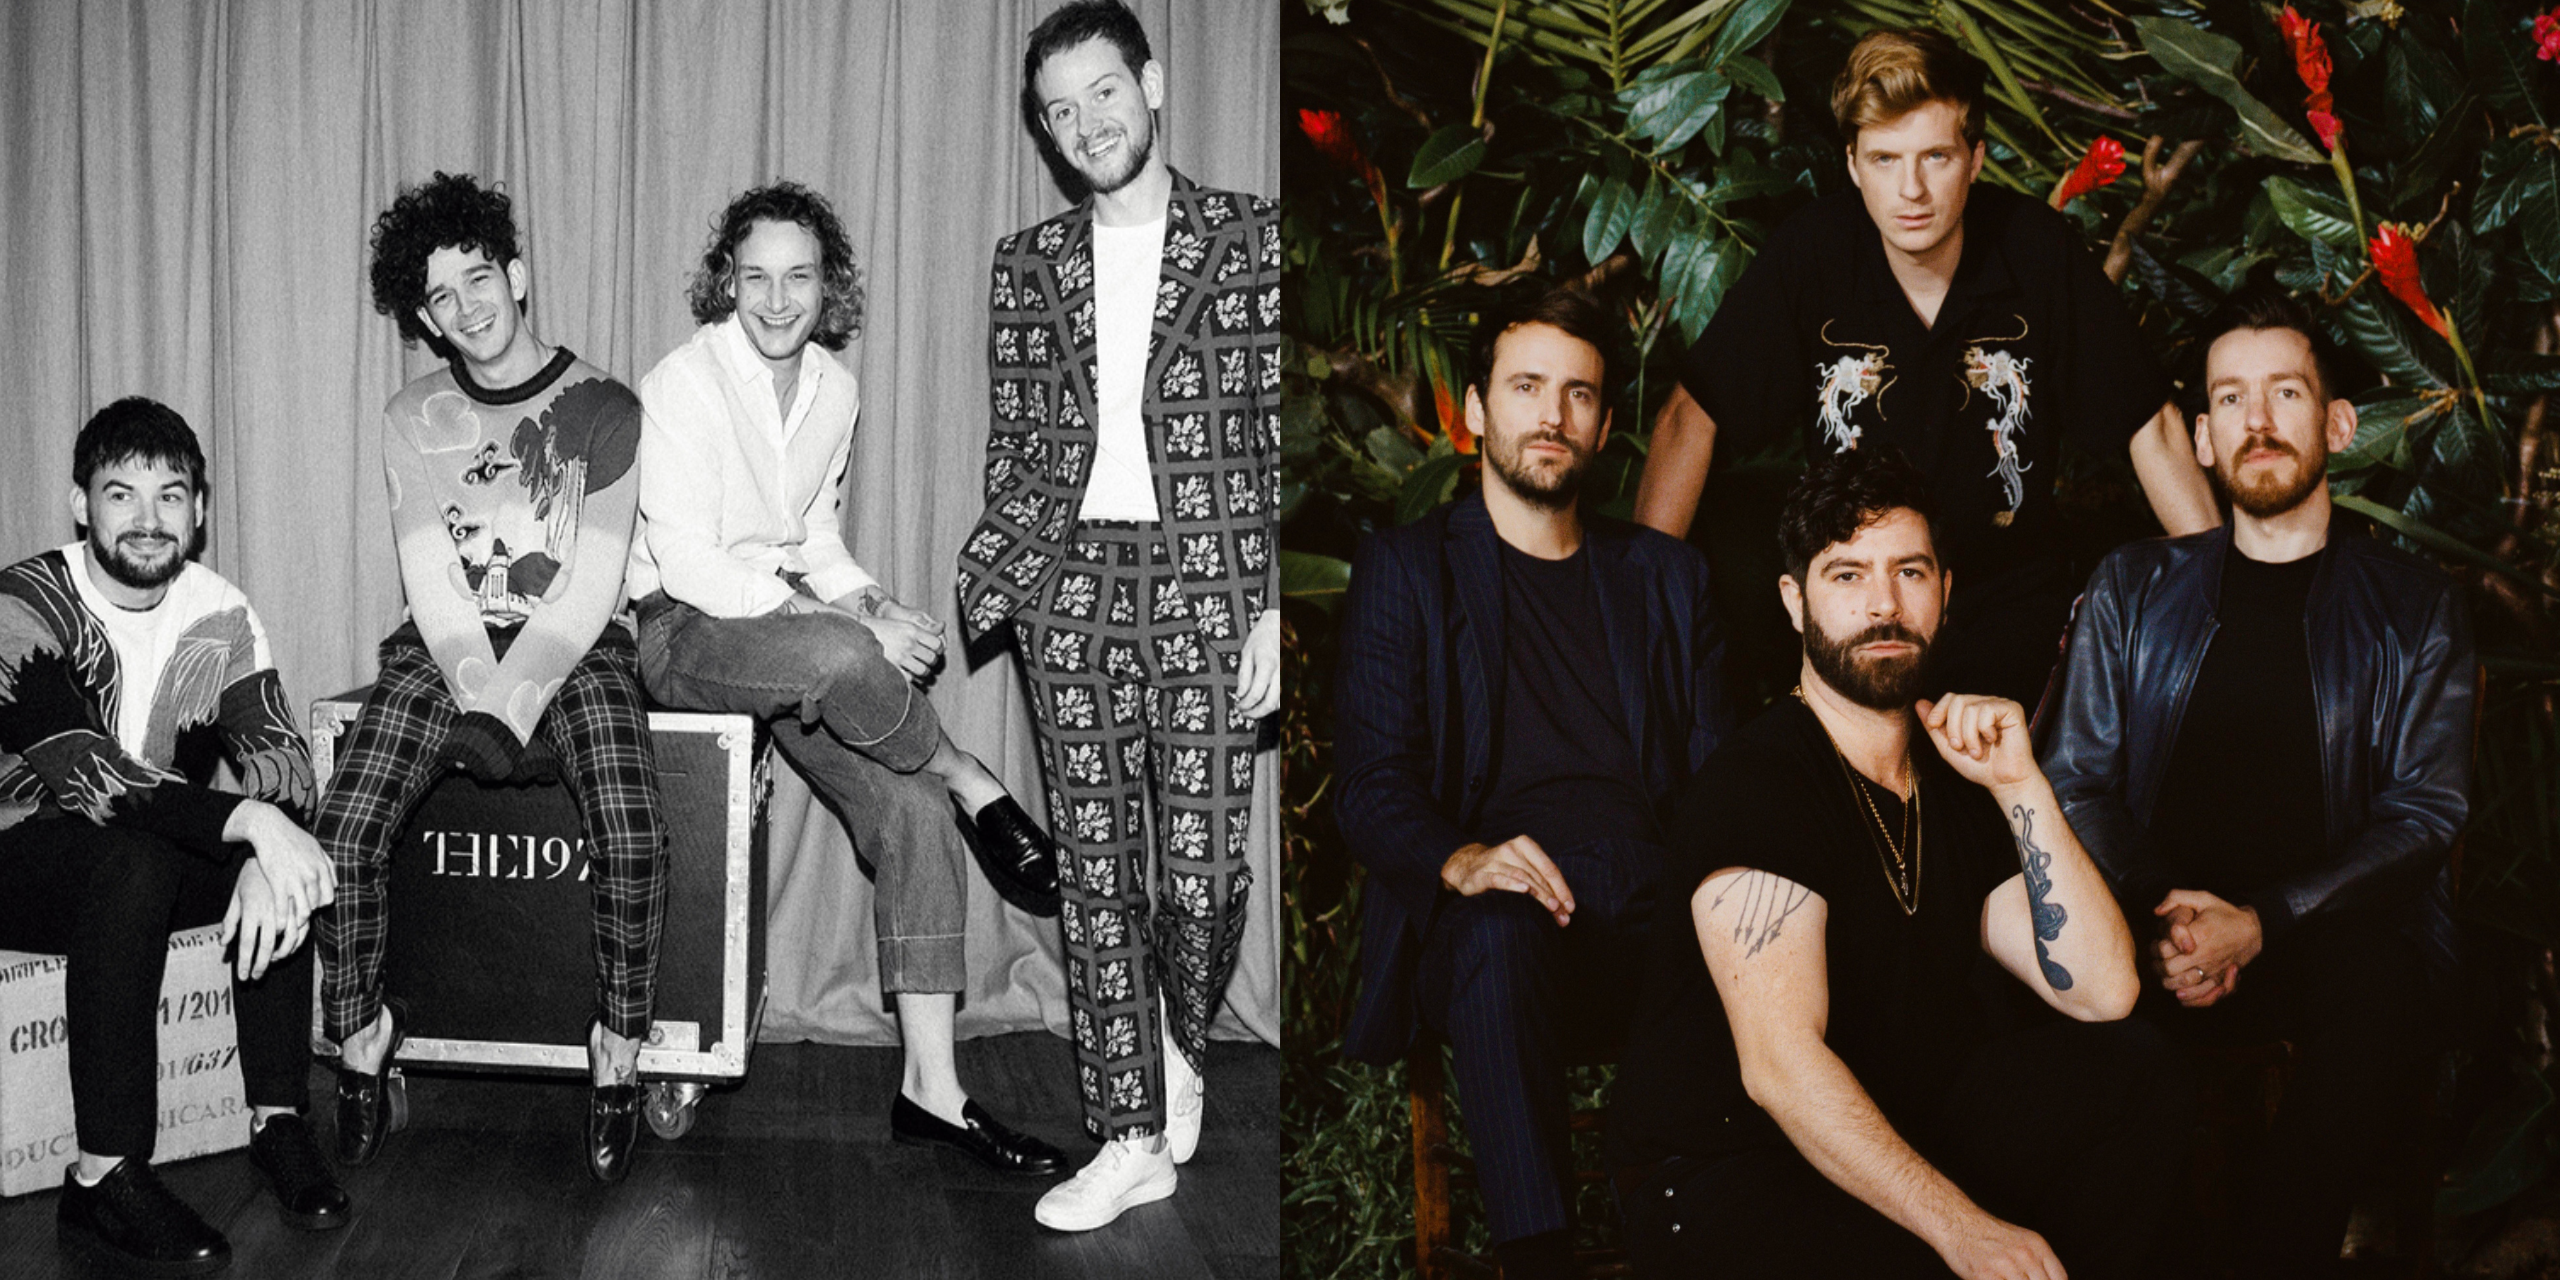 Mercury Prize 2019 shortlist announced – The 1975, Foals, slowthai and more